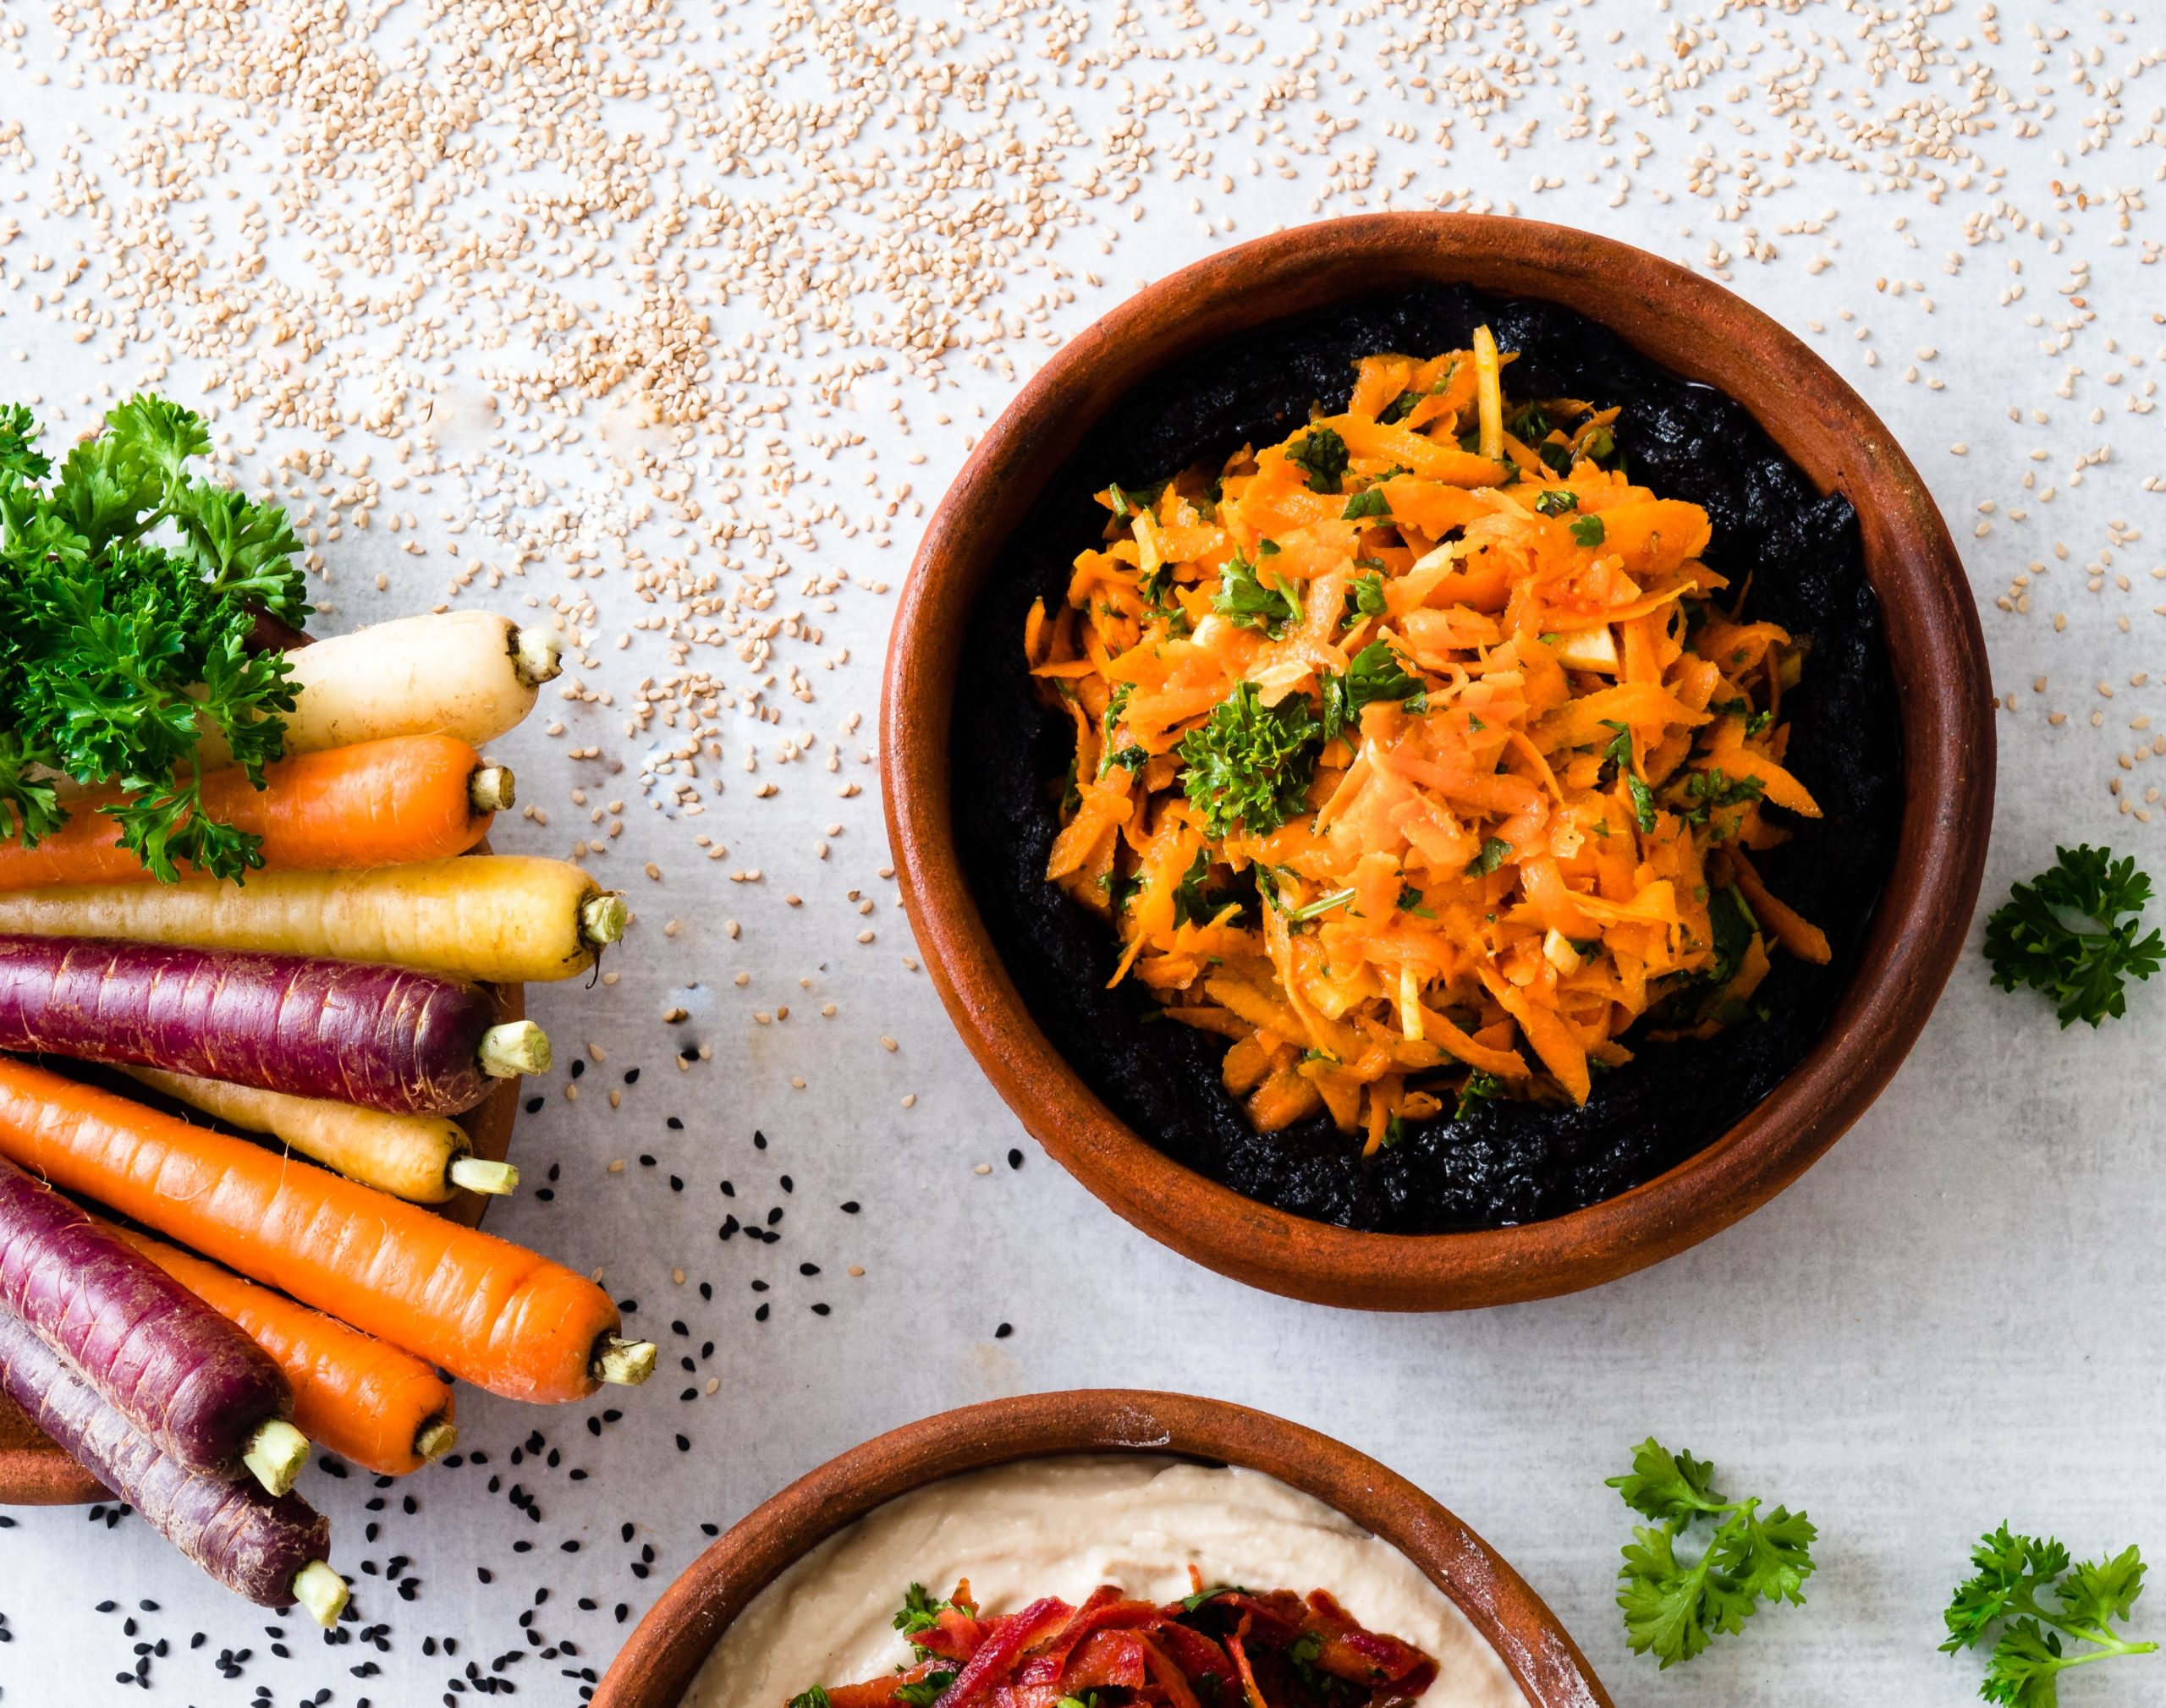 https://goodly.ca/wp-content/uploads/2020/12/Morrocan-Style-Carrot-Slaw-scaled.jpg